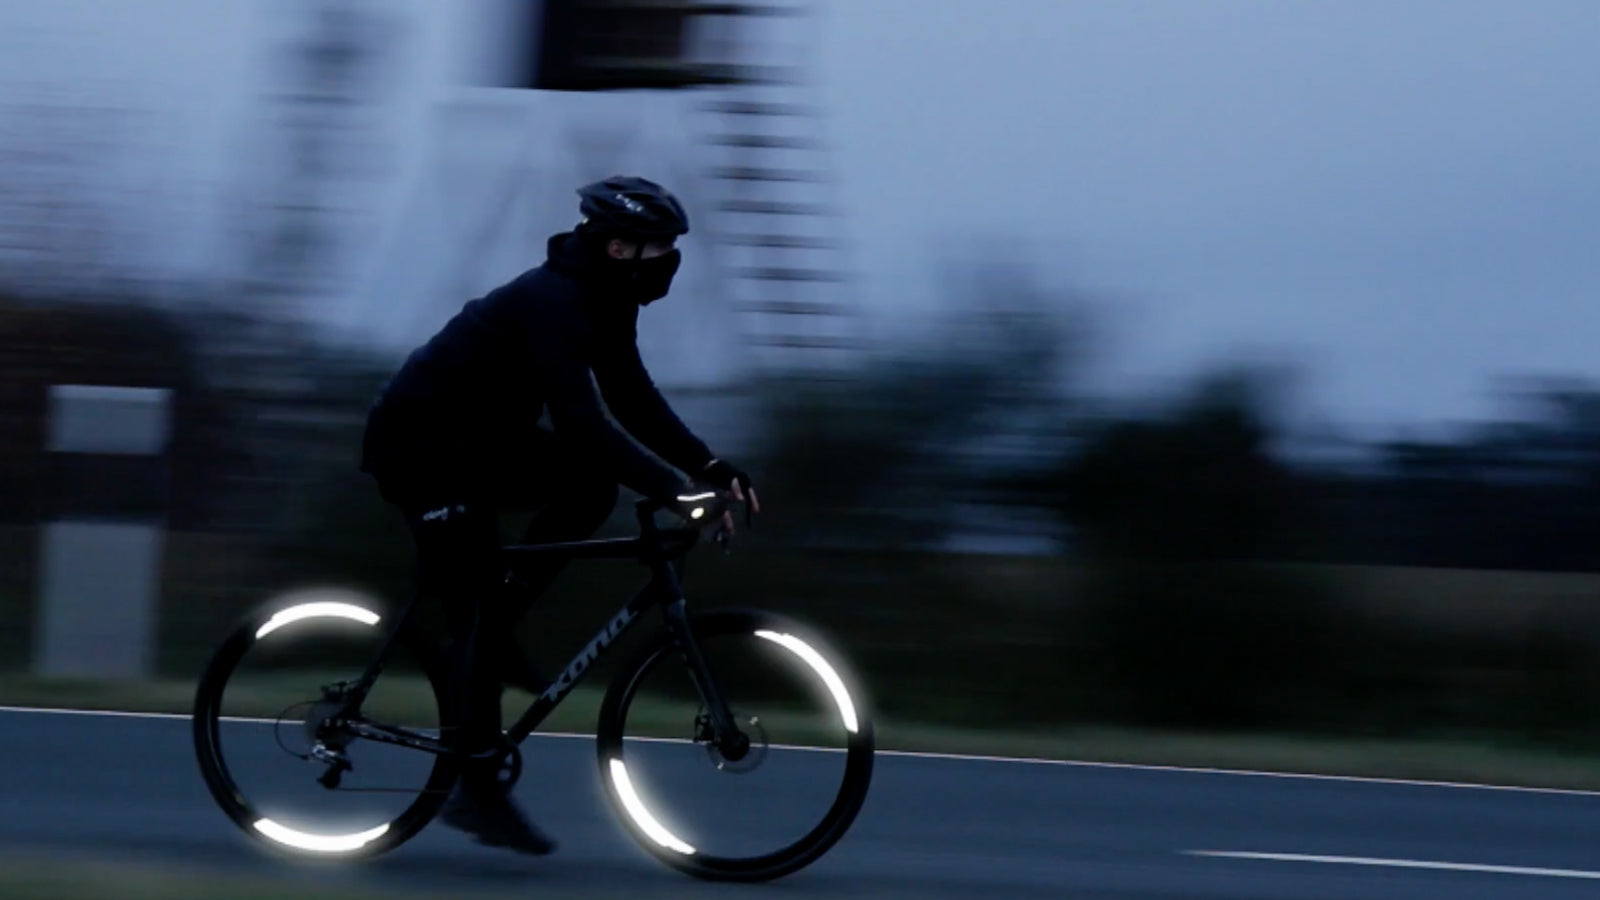 Reflective bike function - Flectr 360 grabs car headlights